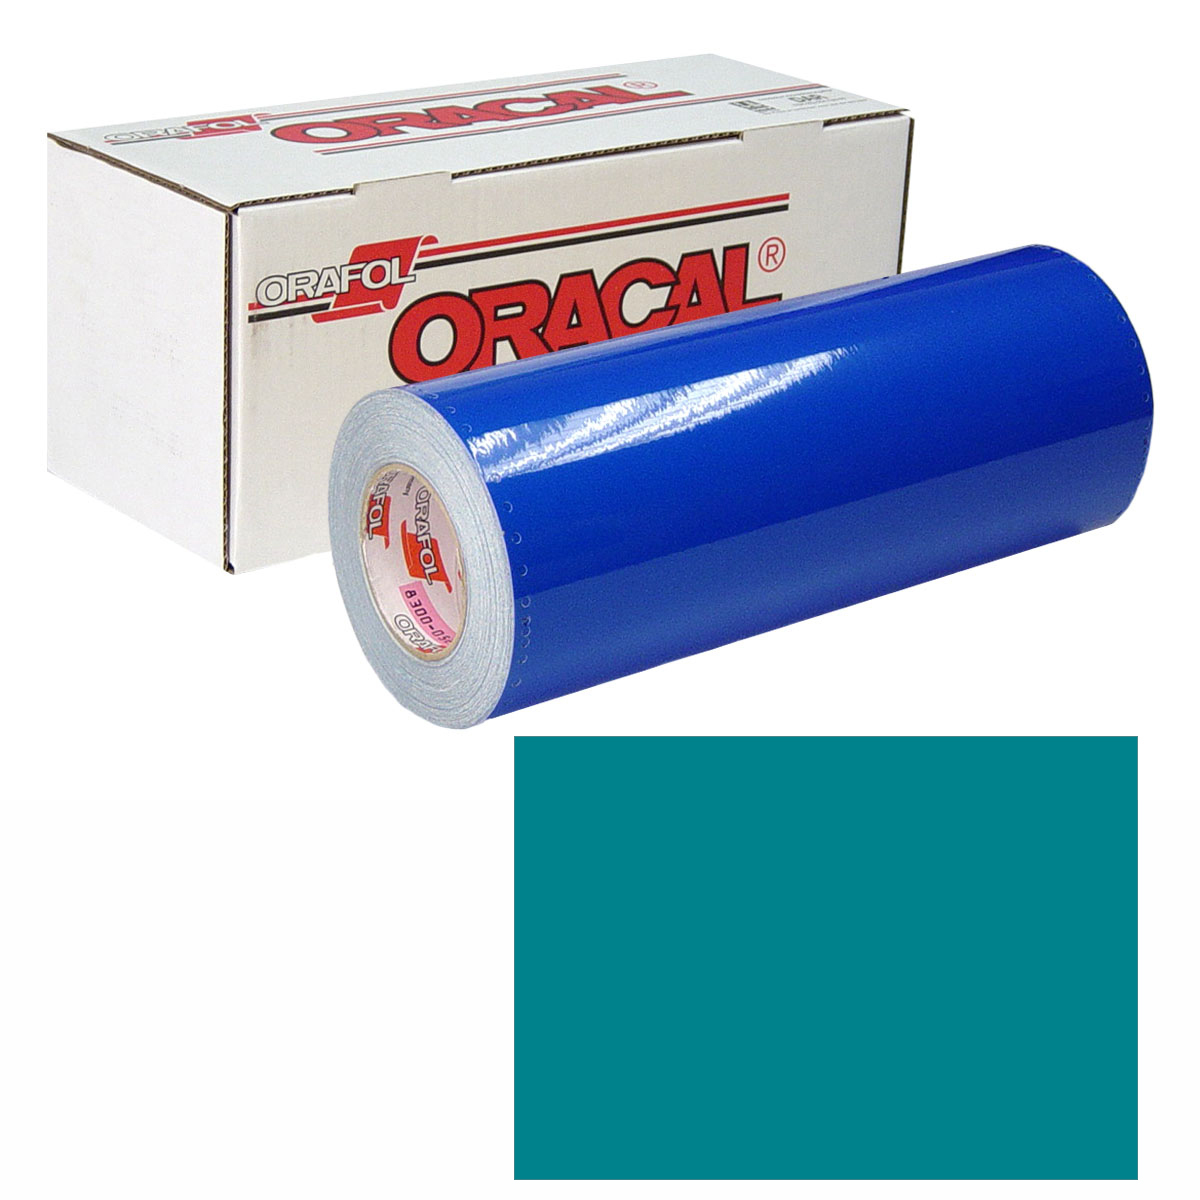 ORACAL 631 Unp 24In X 50Yd 066 Turquoise Blue